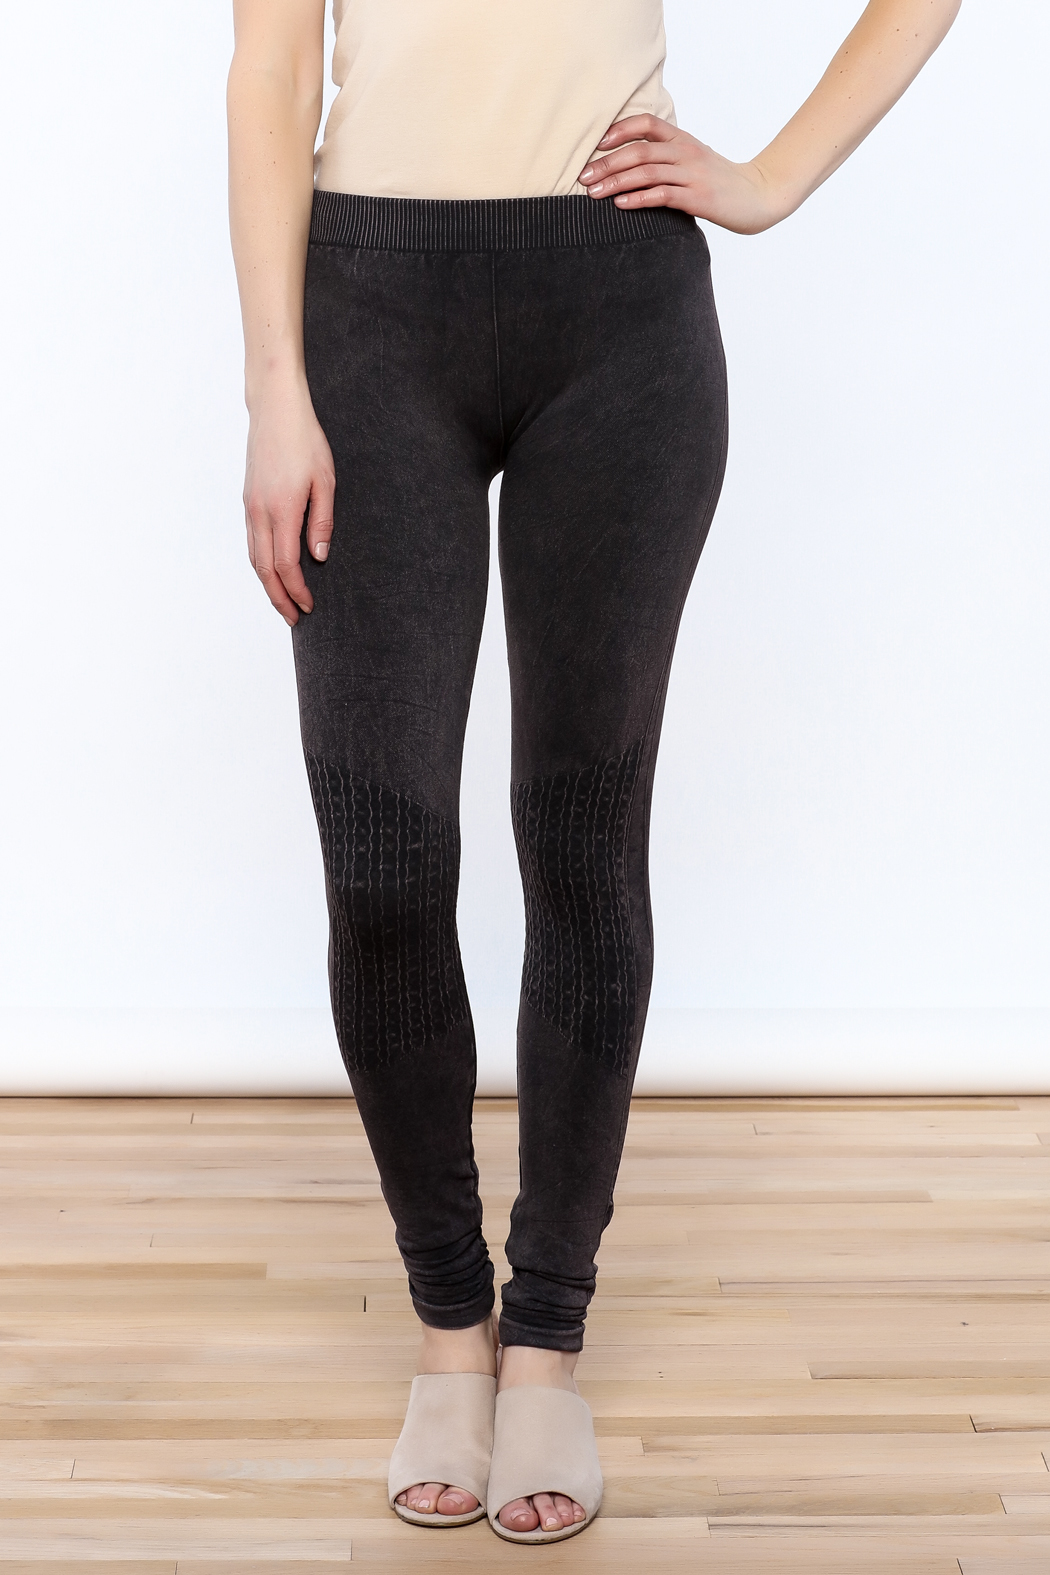 LHTX Charcoal Gray Leggings from Delaware by The Gift Horse u2014 Shoptiques